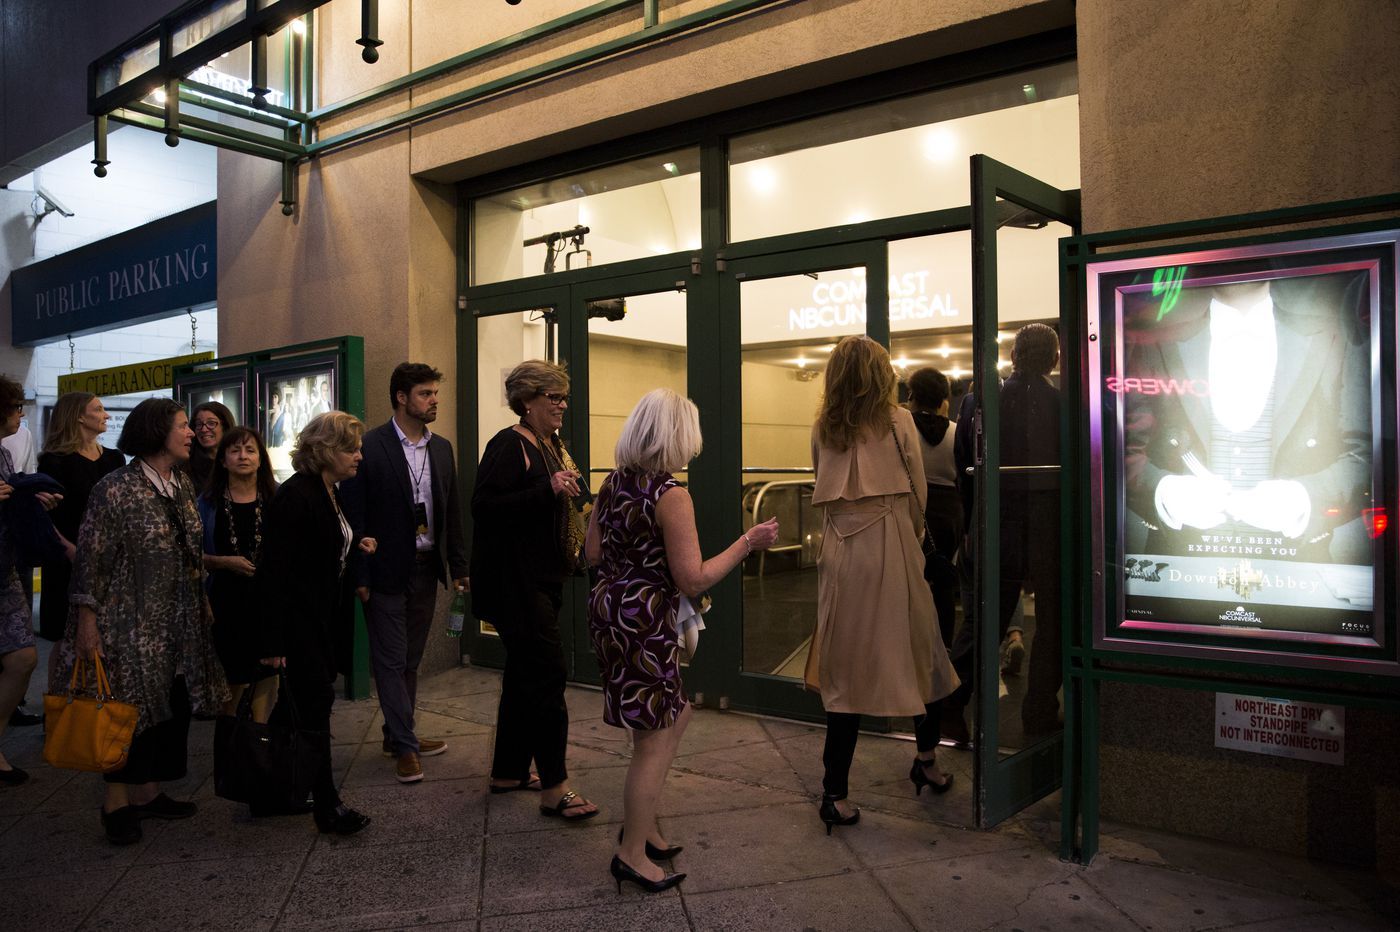 Ritz at the Bourse is set to close, but movie theaters are far from over | Opinion